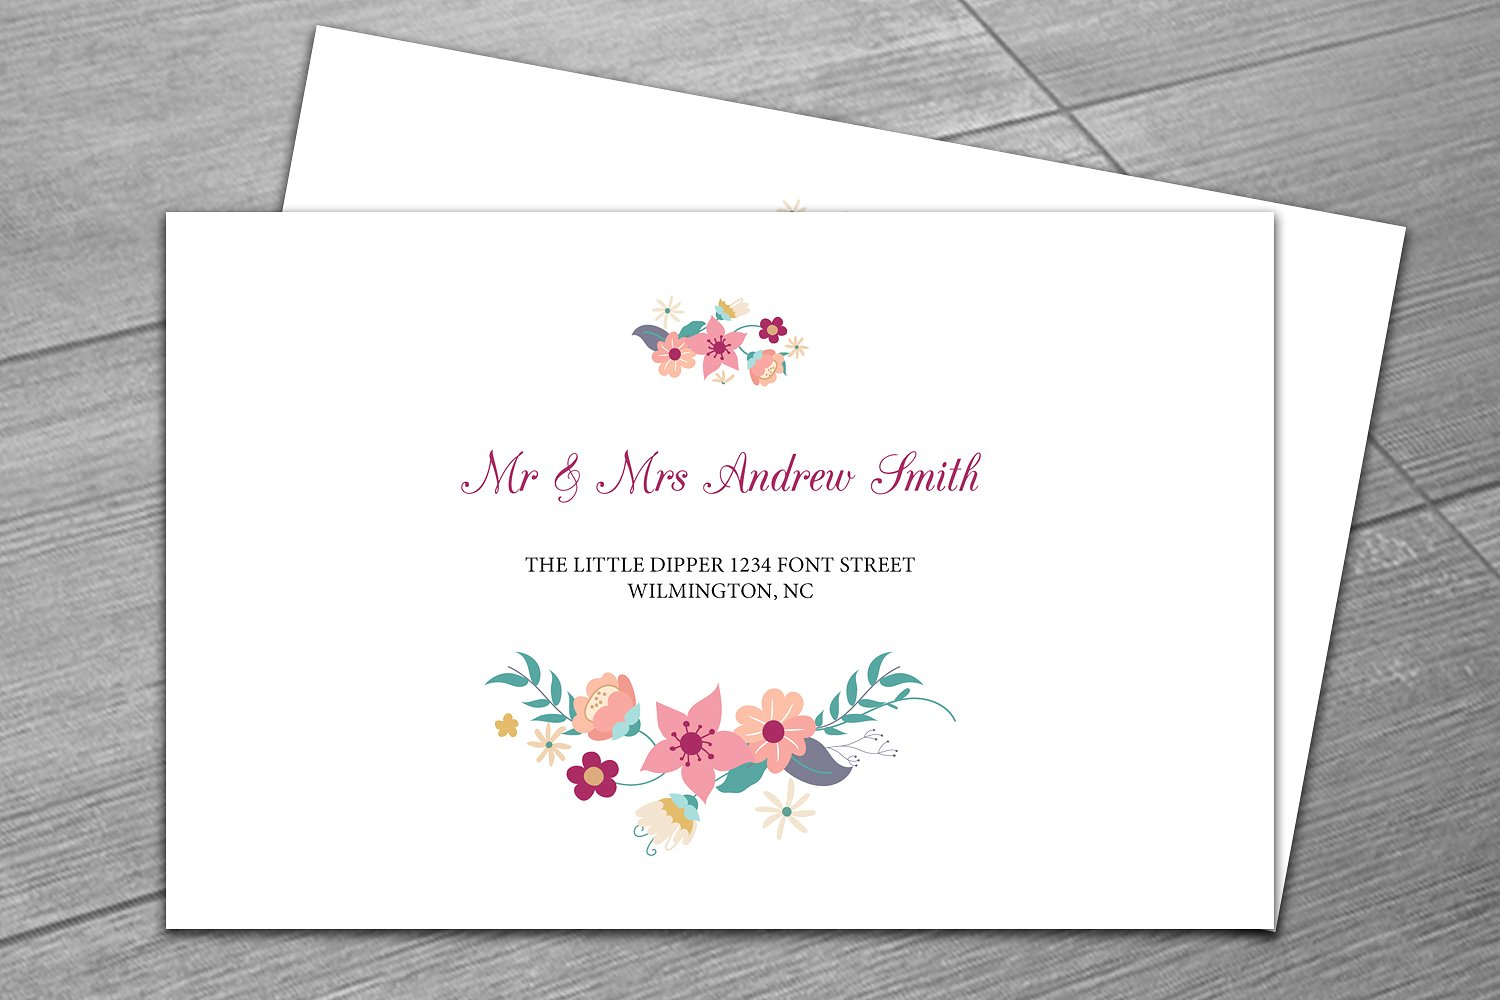 wedding envelope design - Romeo.landinez.co